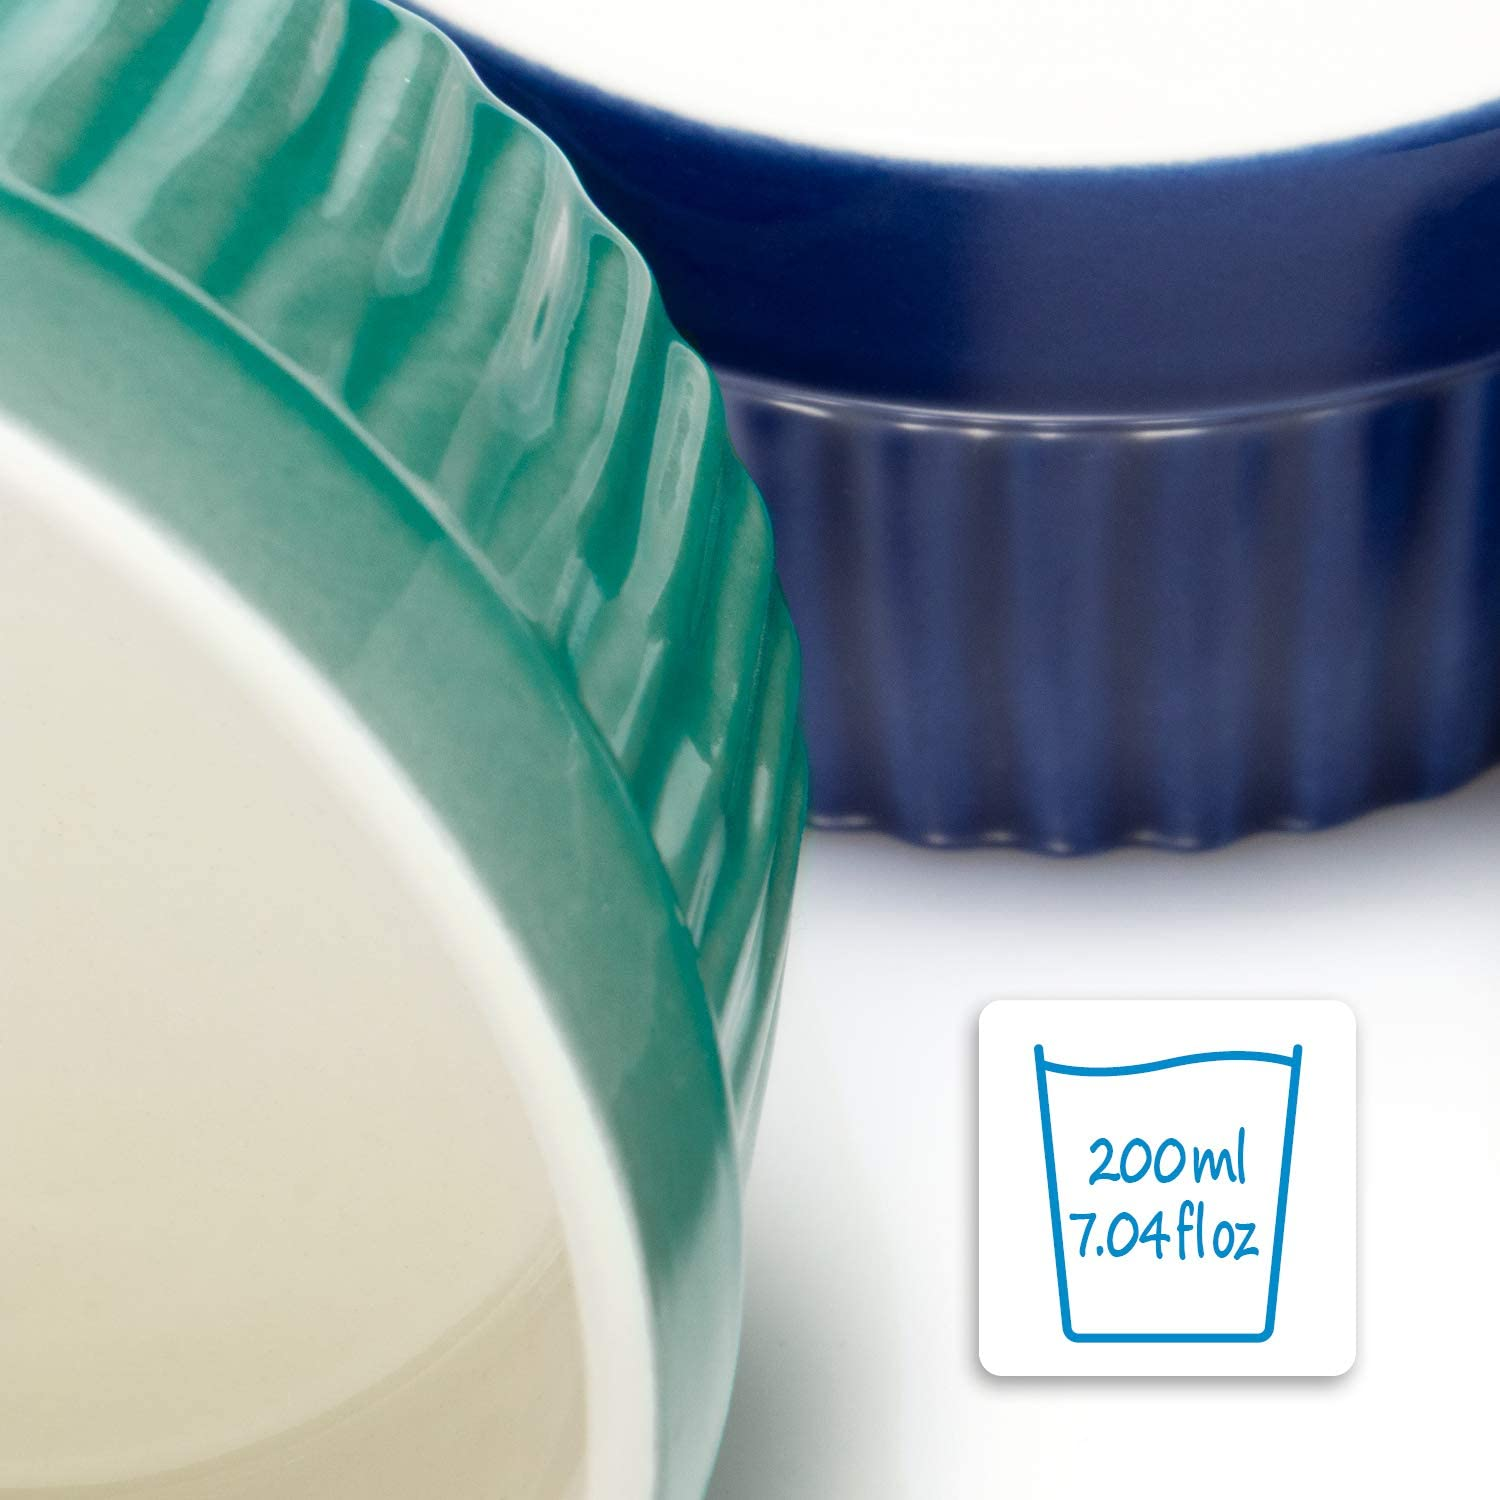 ovenproof Souffl/é Dishes Ramekin Dishes and Pate Moulds for eg Ragout fin in Different Shades of Blue Creme Brulee Ceramic Bowls Each 200 ml COM-FOUR/® 6X Ceramik Ramekins